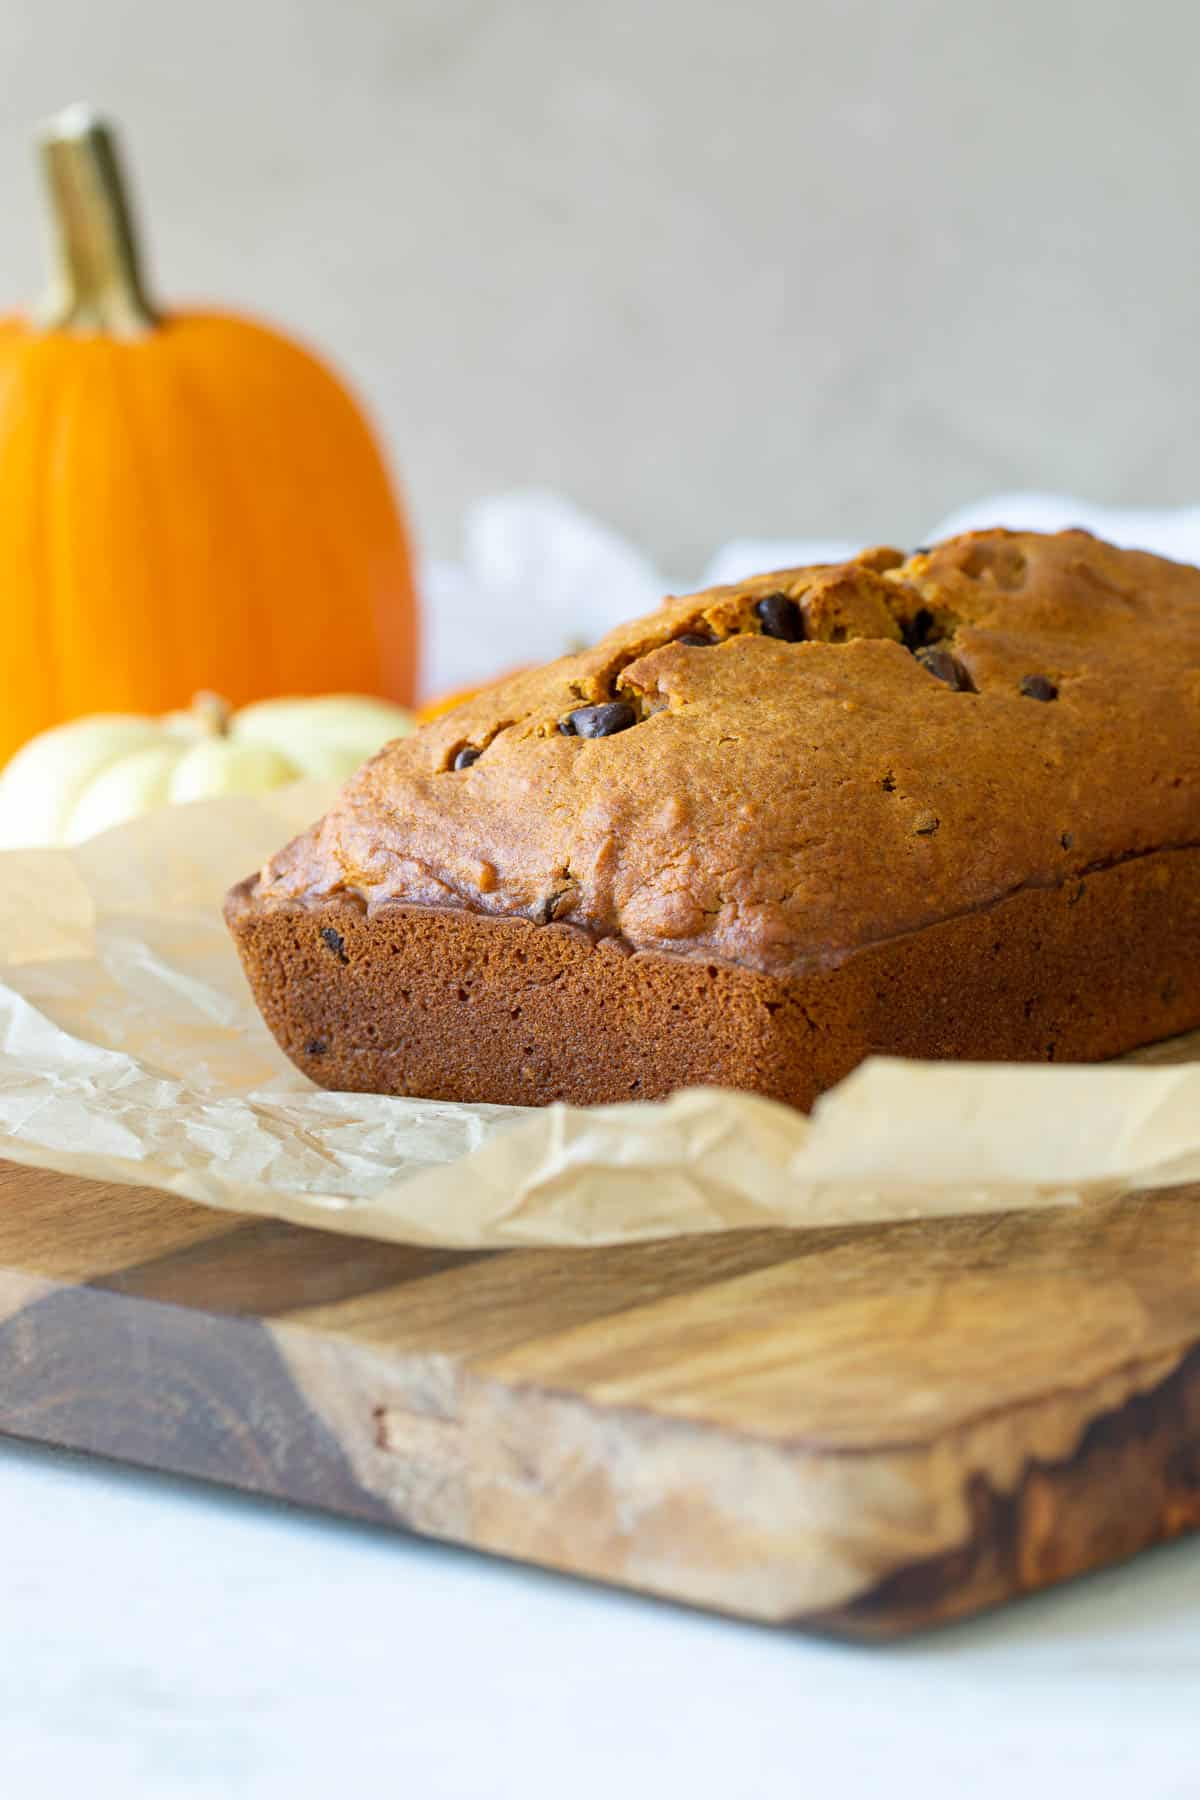 Front view of a loaf of pumpkin chocolate chip bread on a wood cutting board.